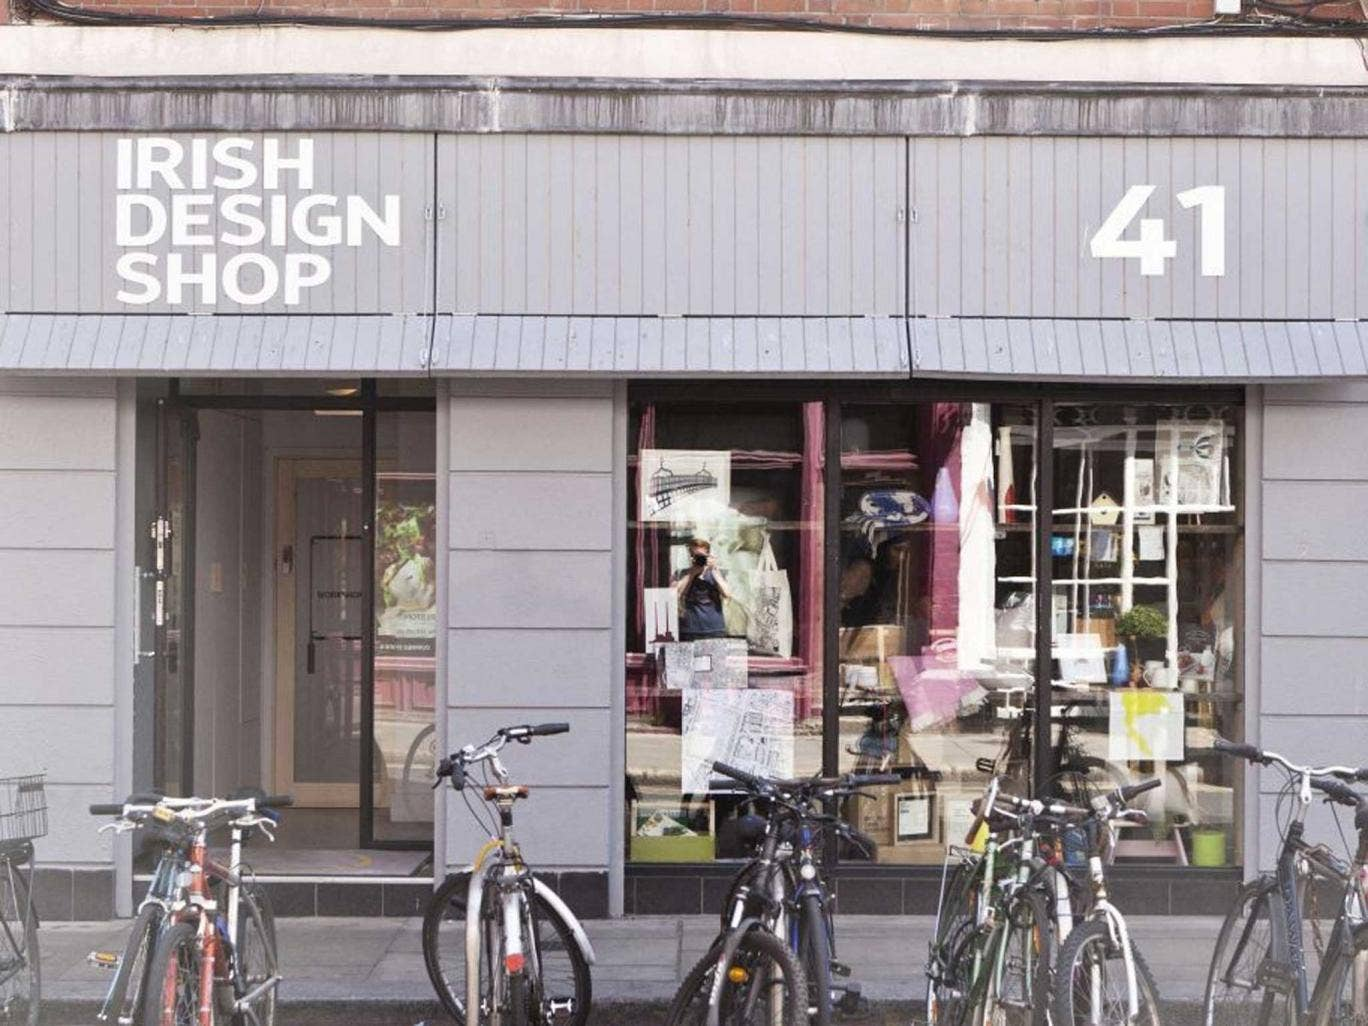 In with the new: Irish Design Shop showcases local designers